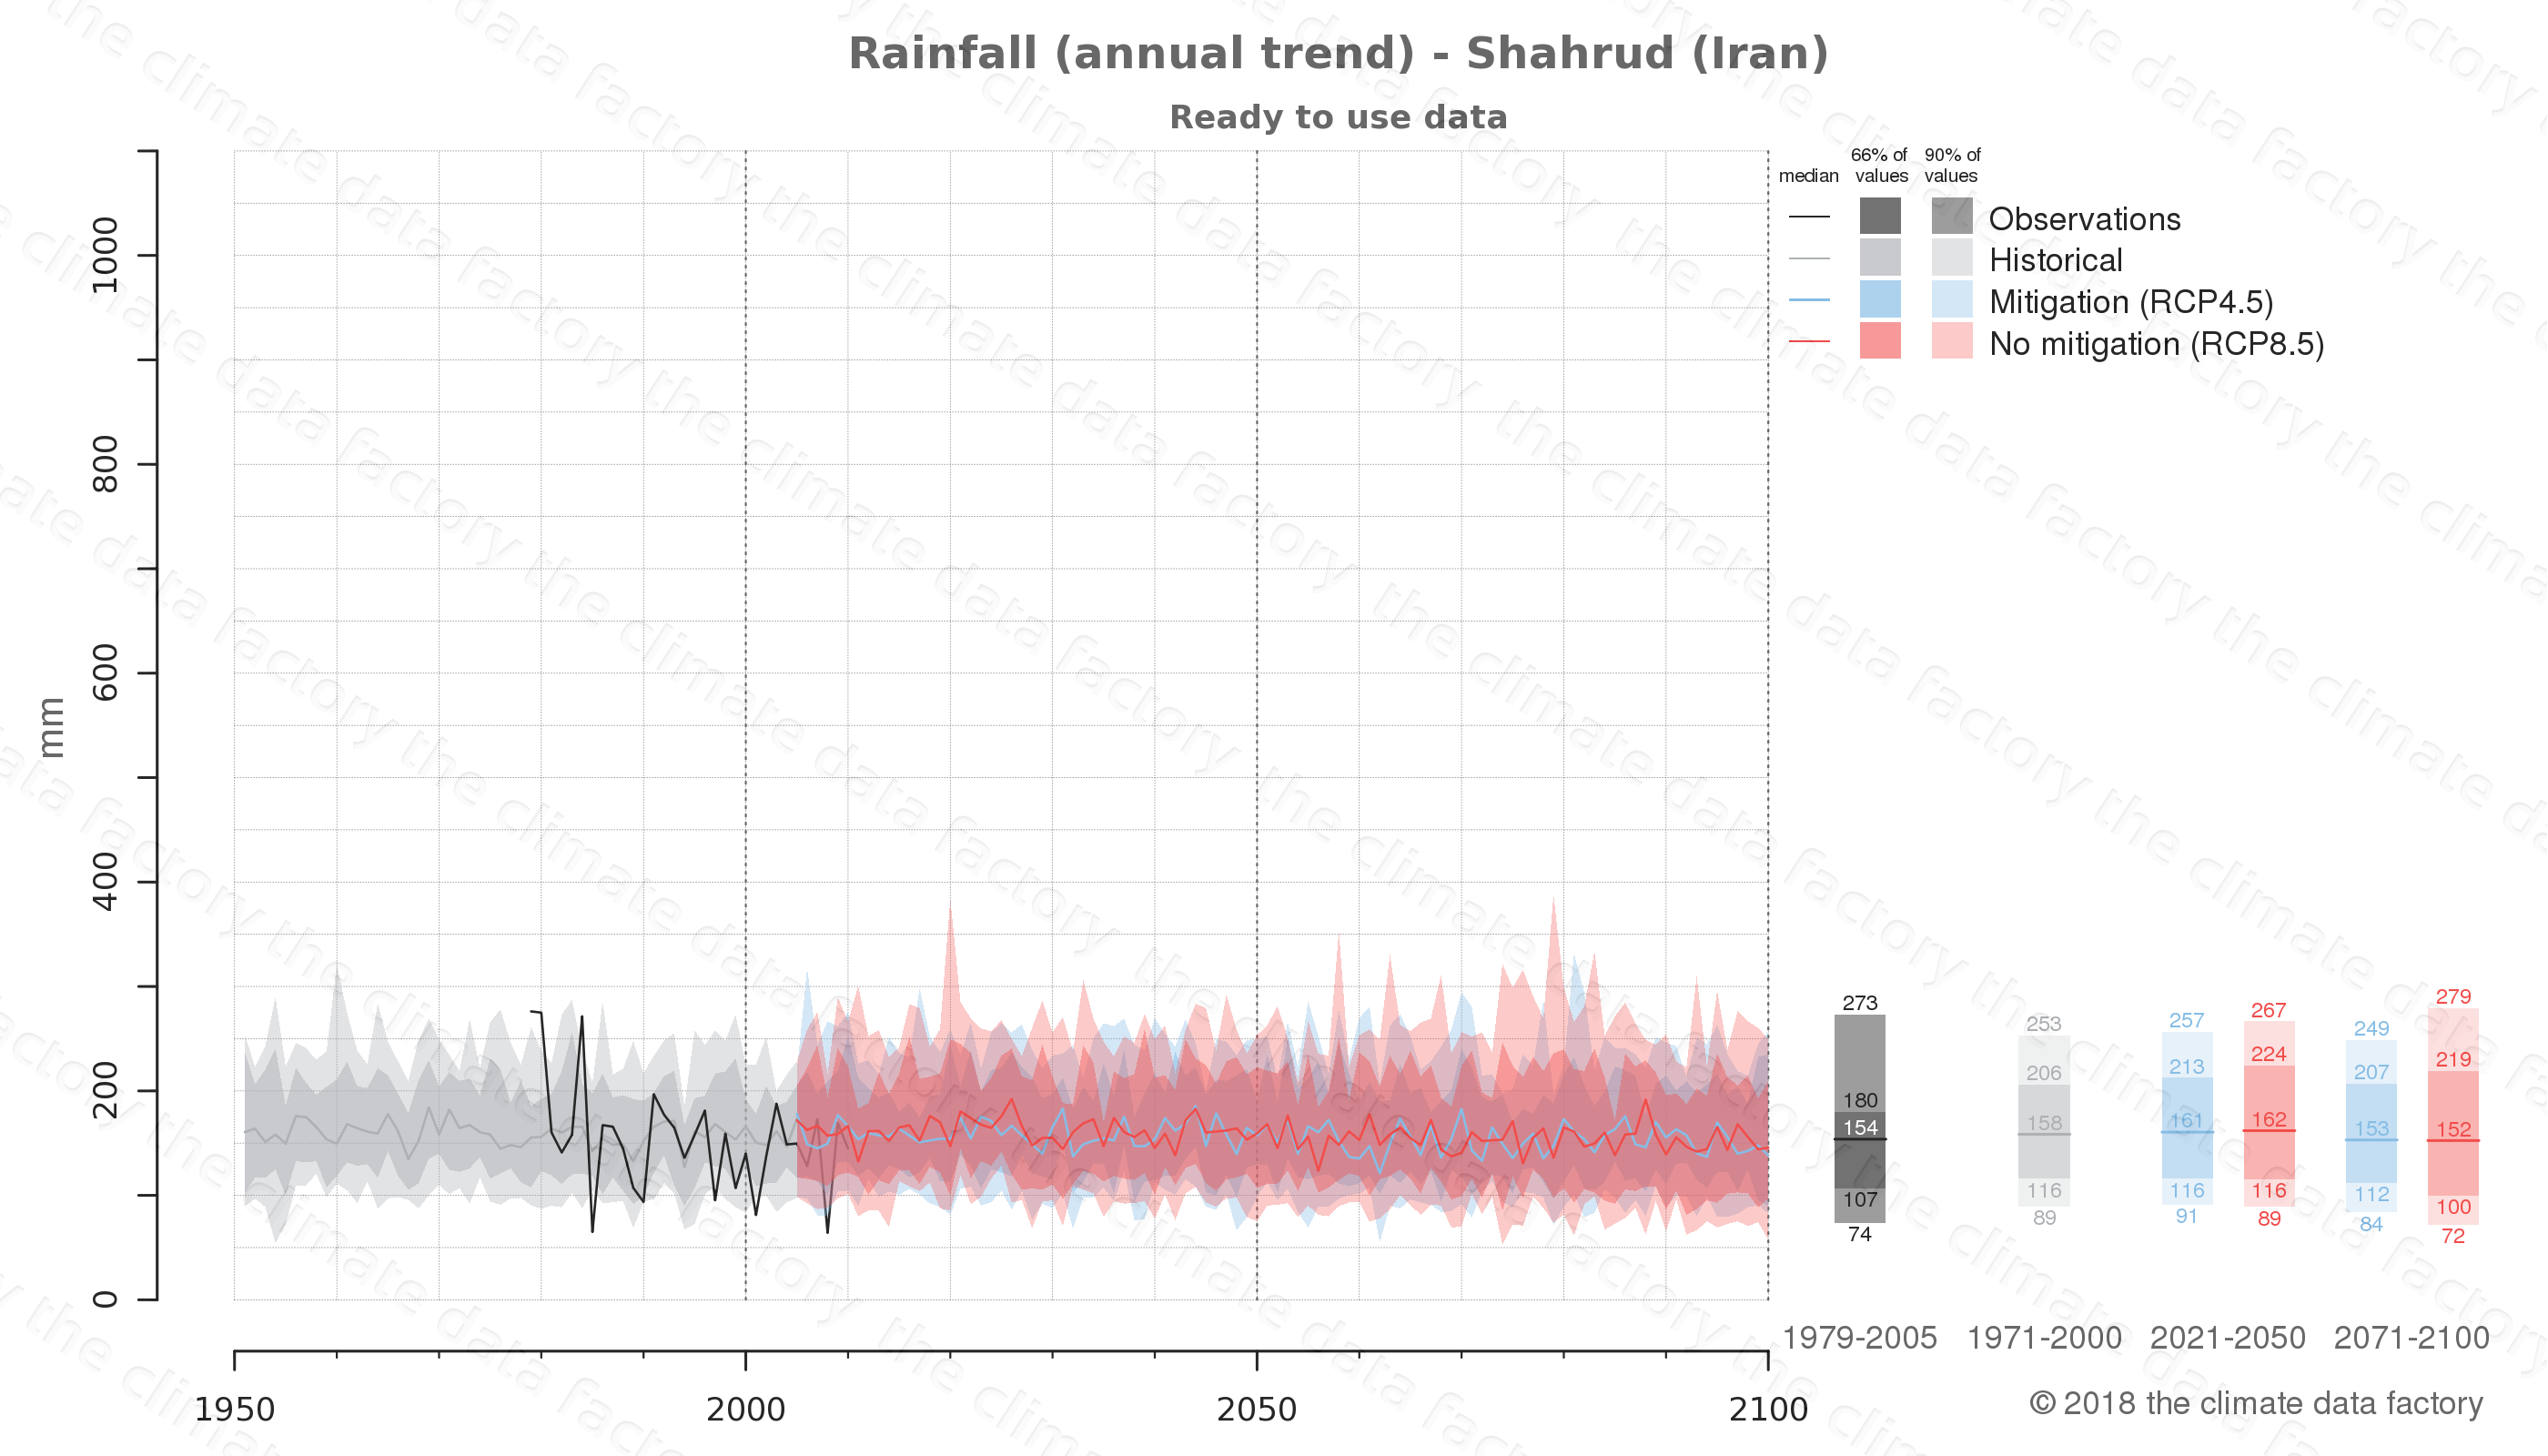 climate change data policy adaptation climate graph city data rainfall shahrud iran